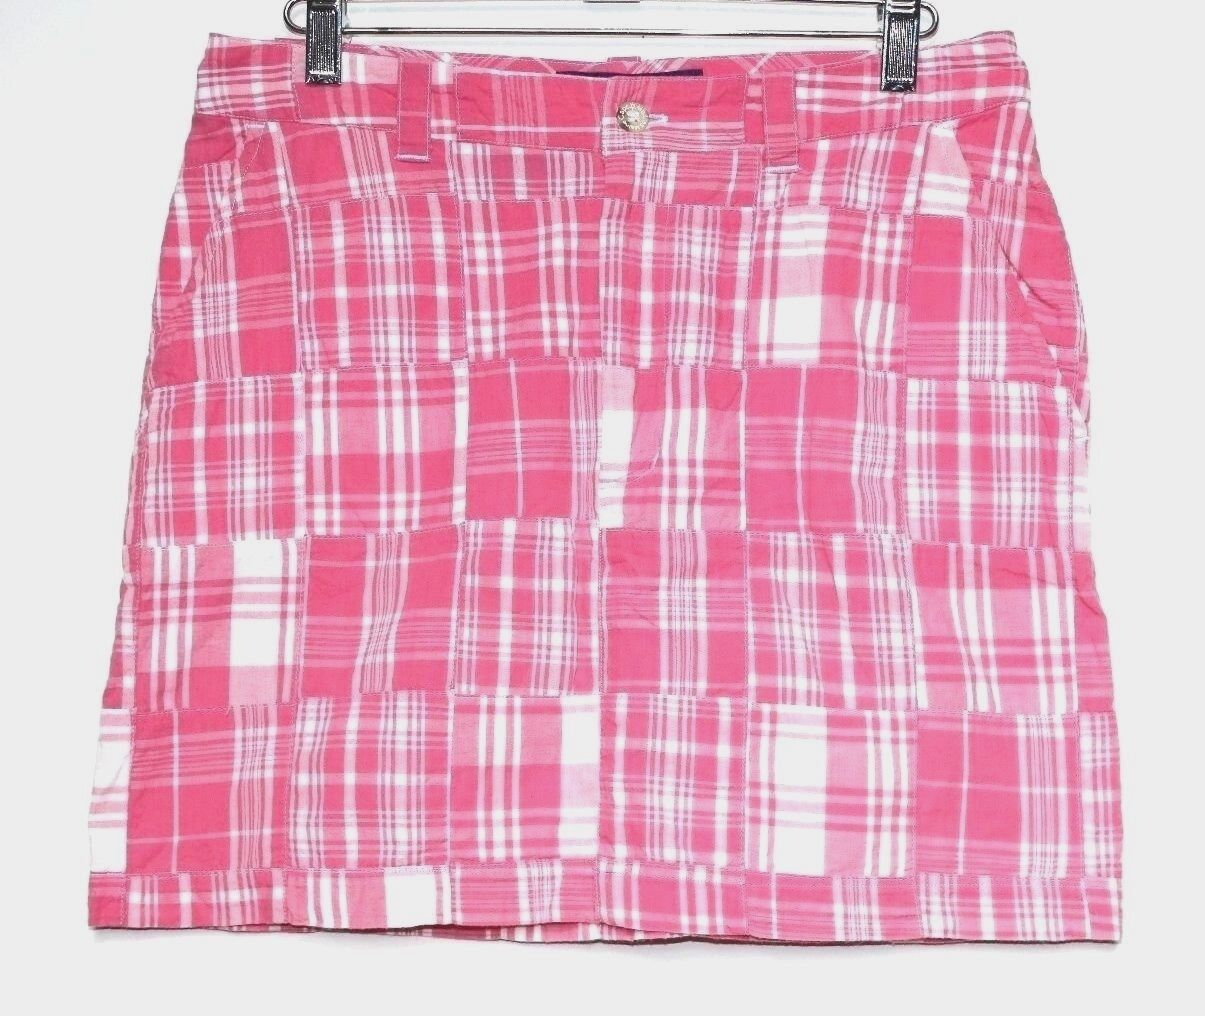 Cape Madras - 4 (S) - Pink & White Plaid Madras Patchwork Pencil Mini Skirt